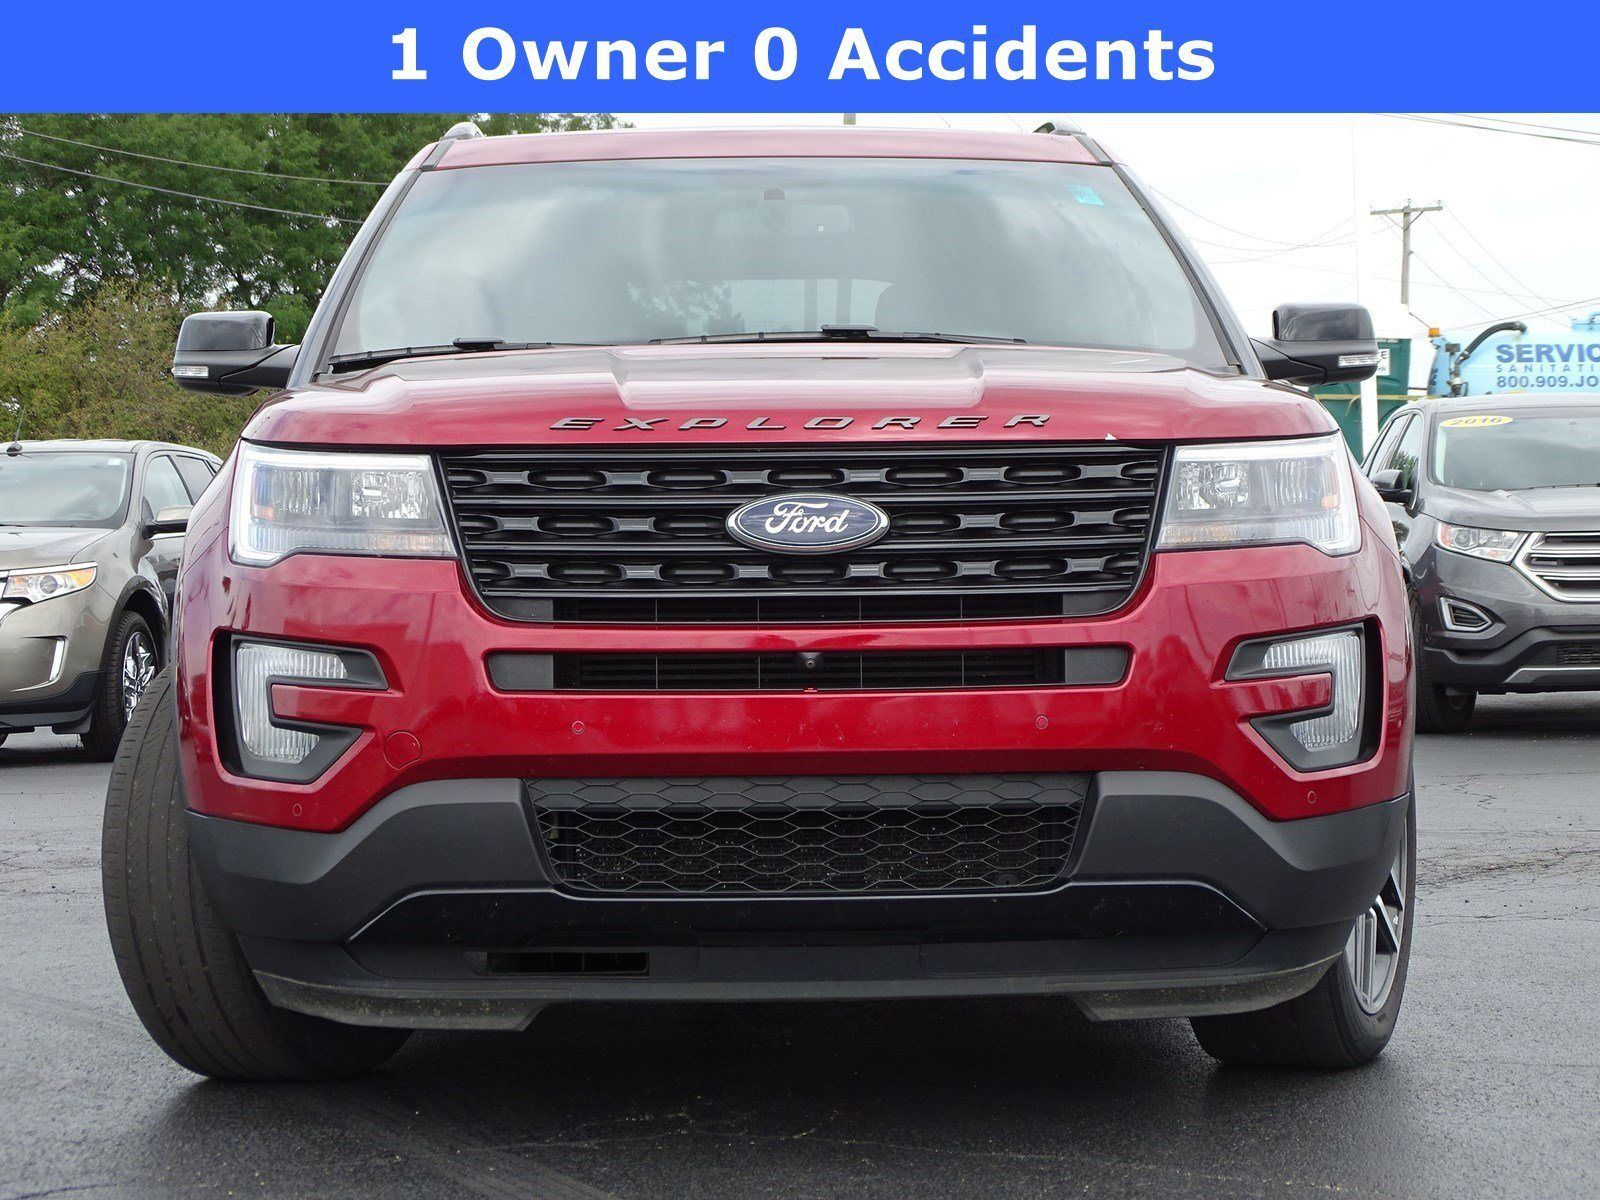 2021 ford Explorer Sports Prices in 2020 (With images